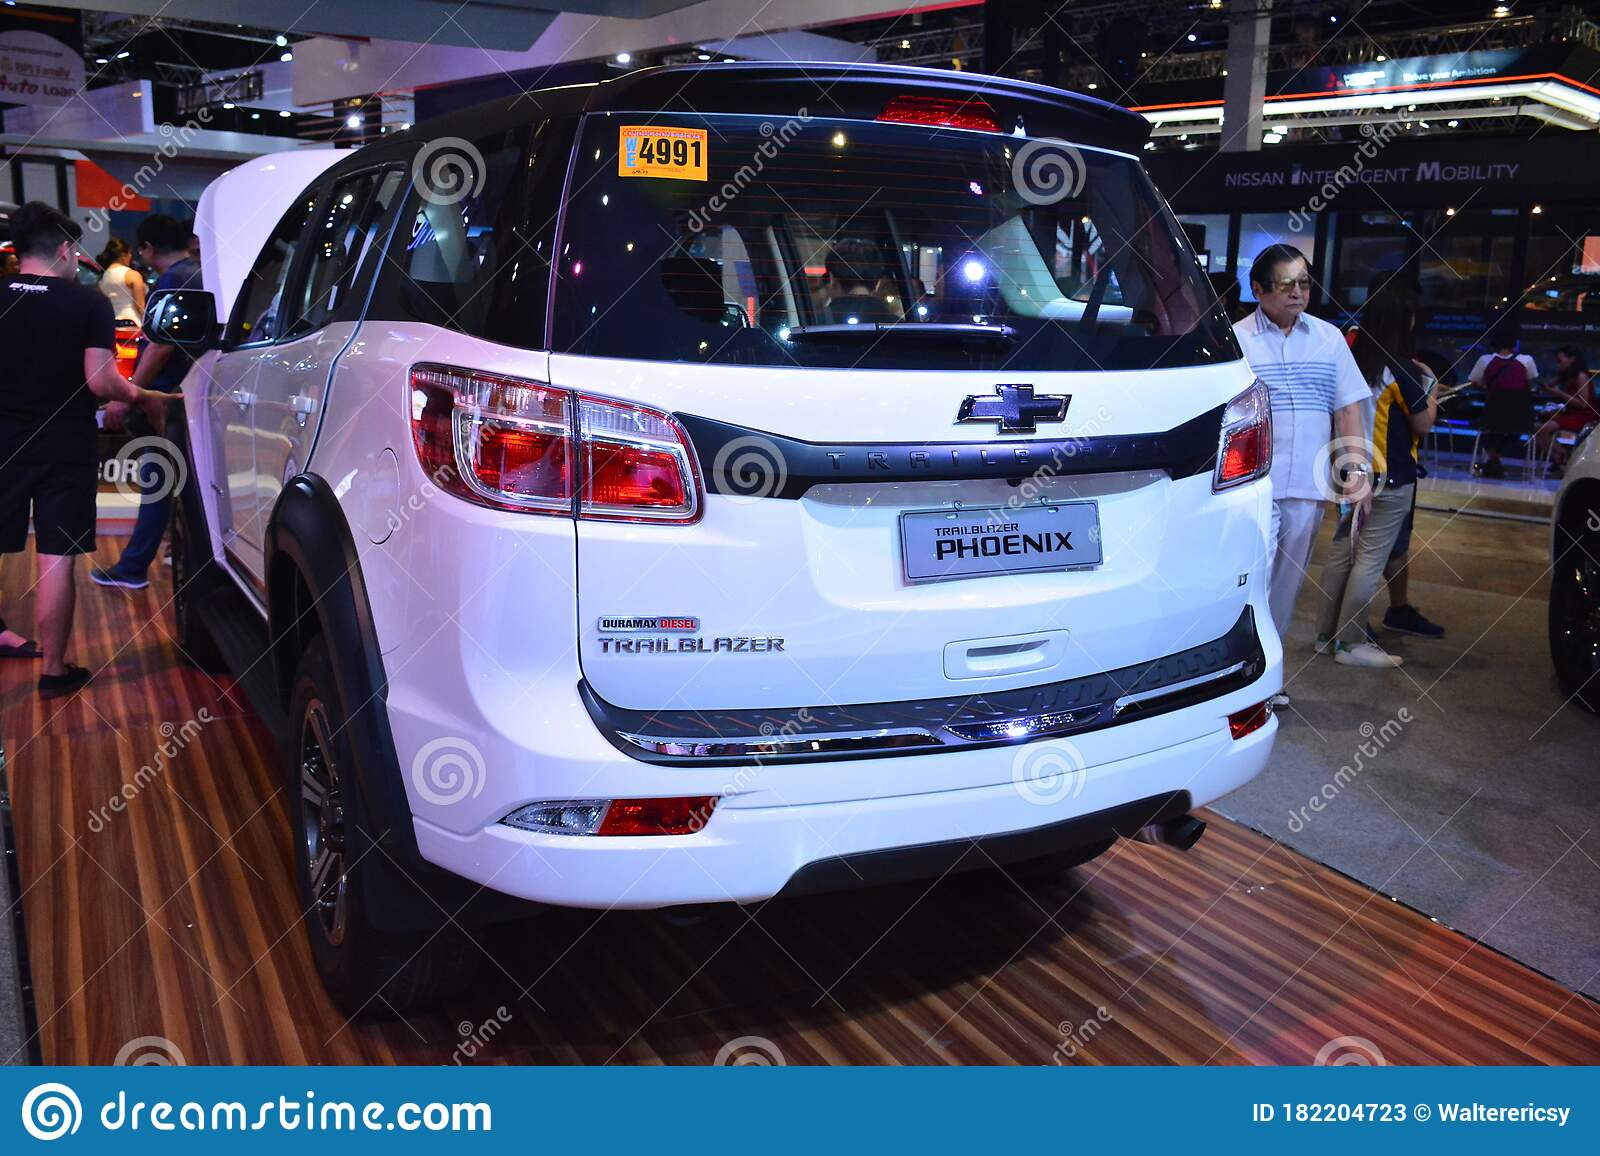 Chevrolet Trailblazer Phoenix Suv At Manila International Auto Show In Pasay Philippines Editorial Stock Photo Image Of Mias Vehicle 182204723